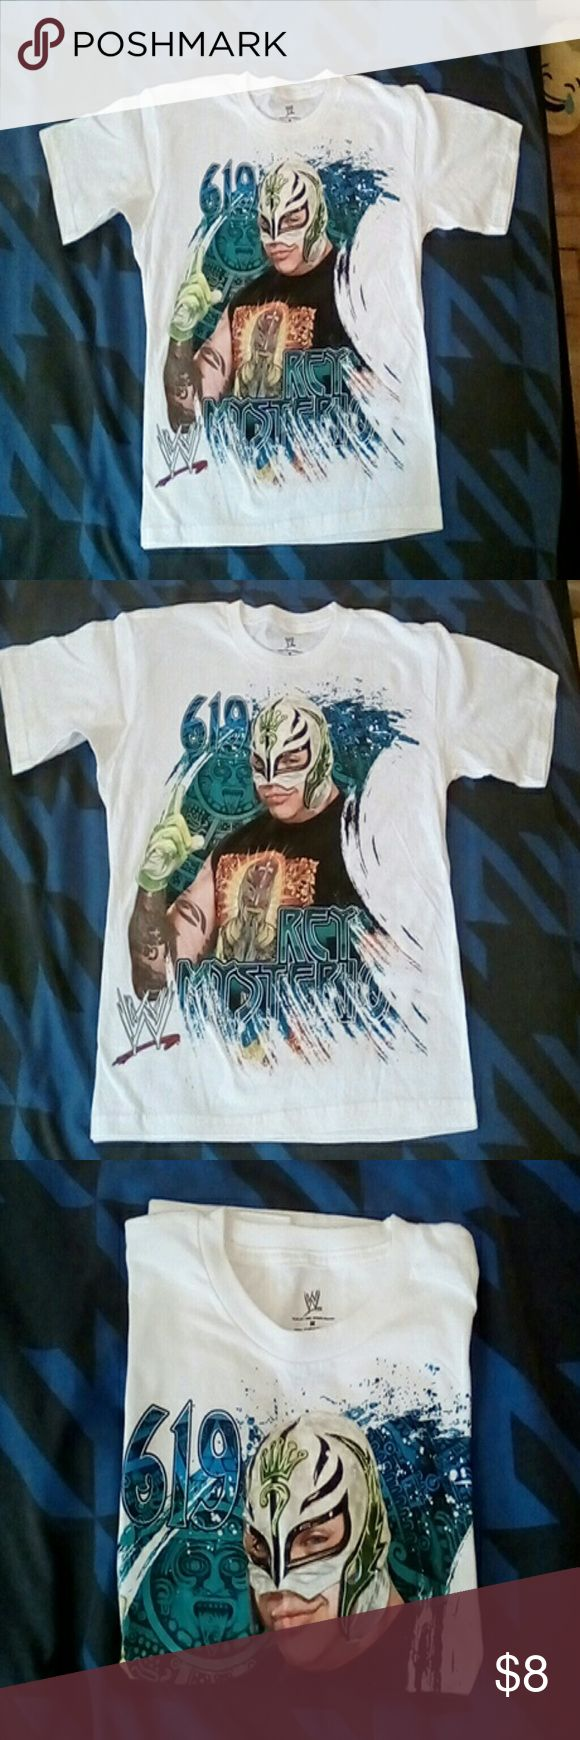 Boys Tee WWE Tee white short sleeve Ray Mysterio brand new without tags (tag says M but more like a Lg) WWE  Shirts & Tops Tees - Short Sleeve